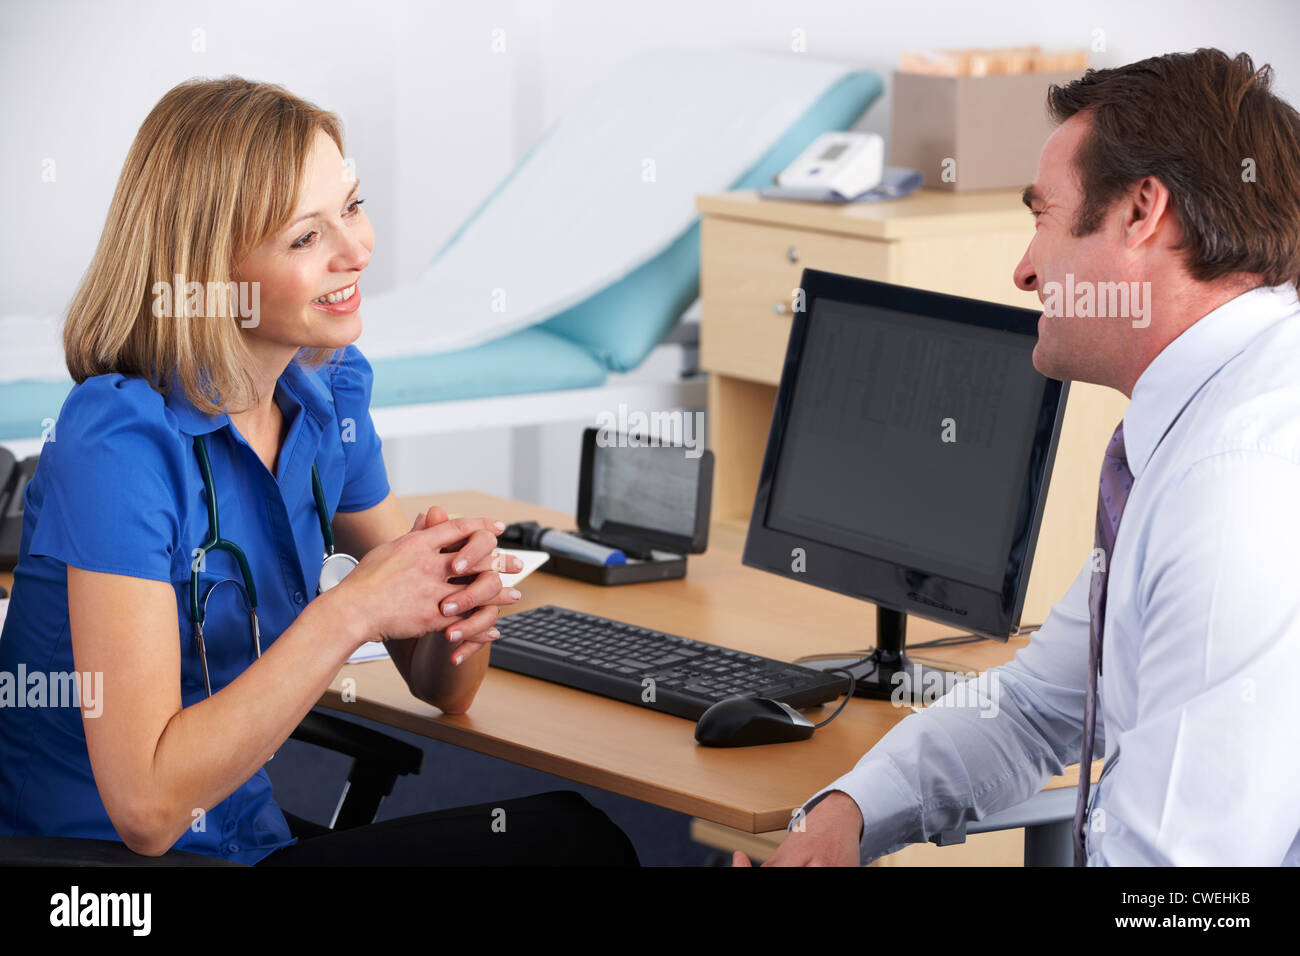 Female UK doctor talking to male patient - Stock Image